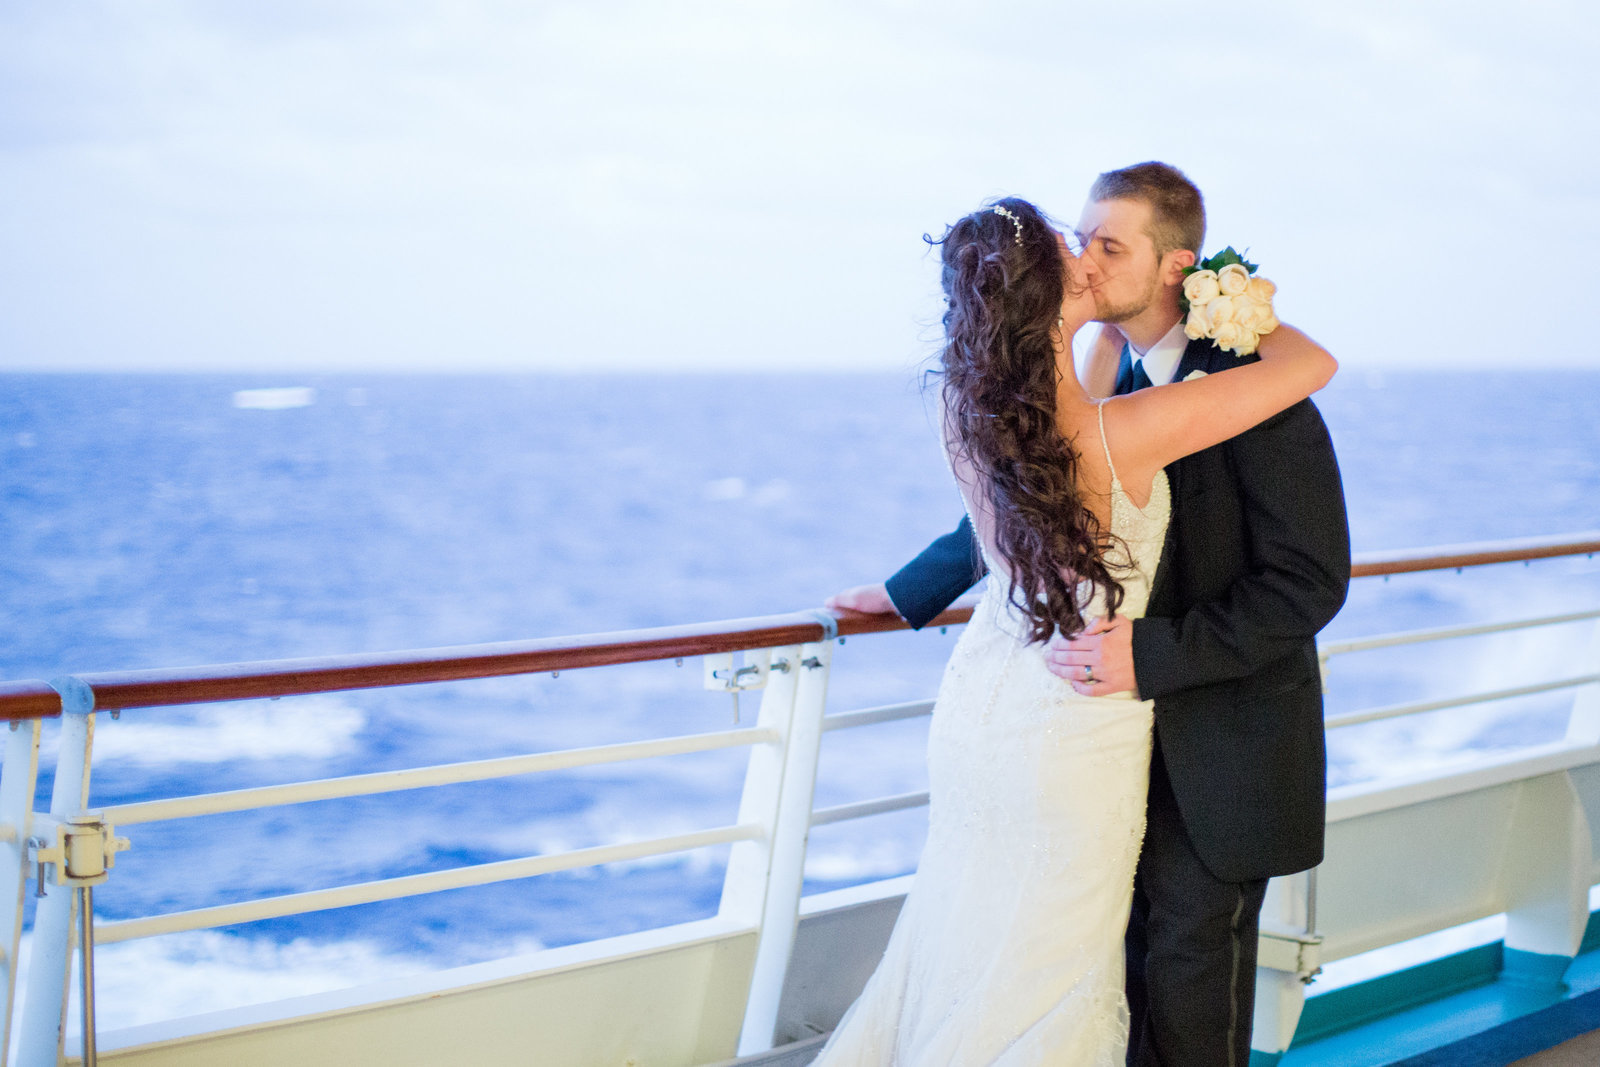 cruise-bride-and-groom.jpg